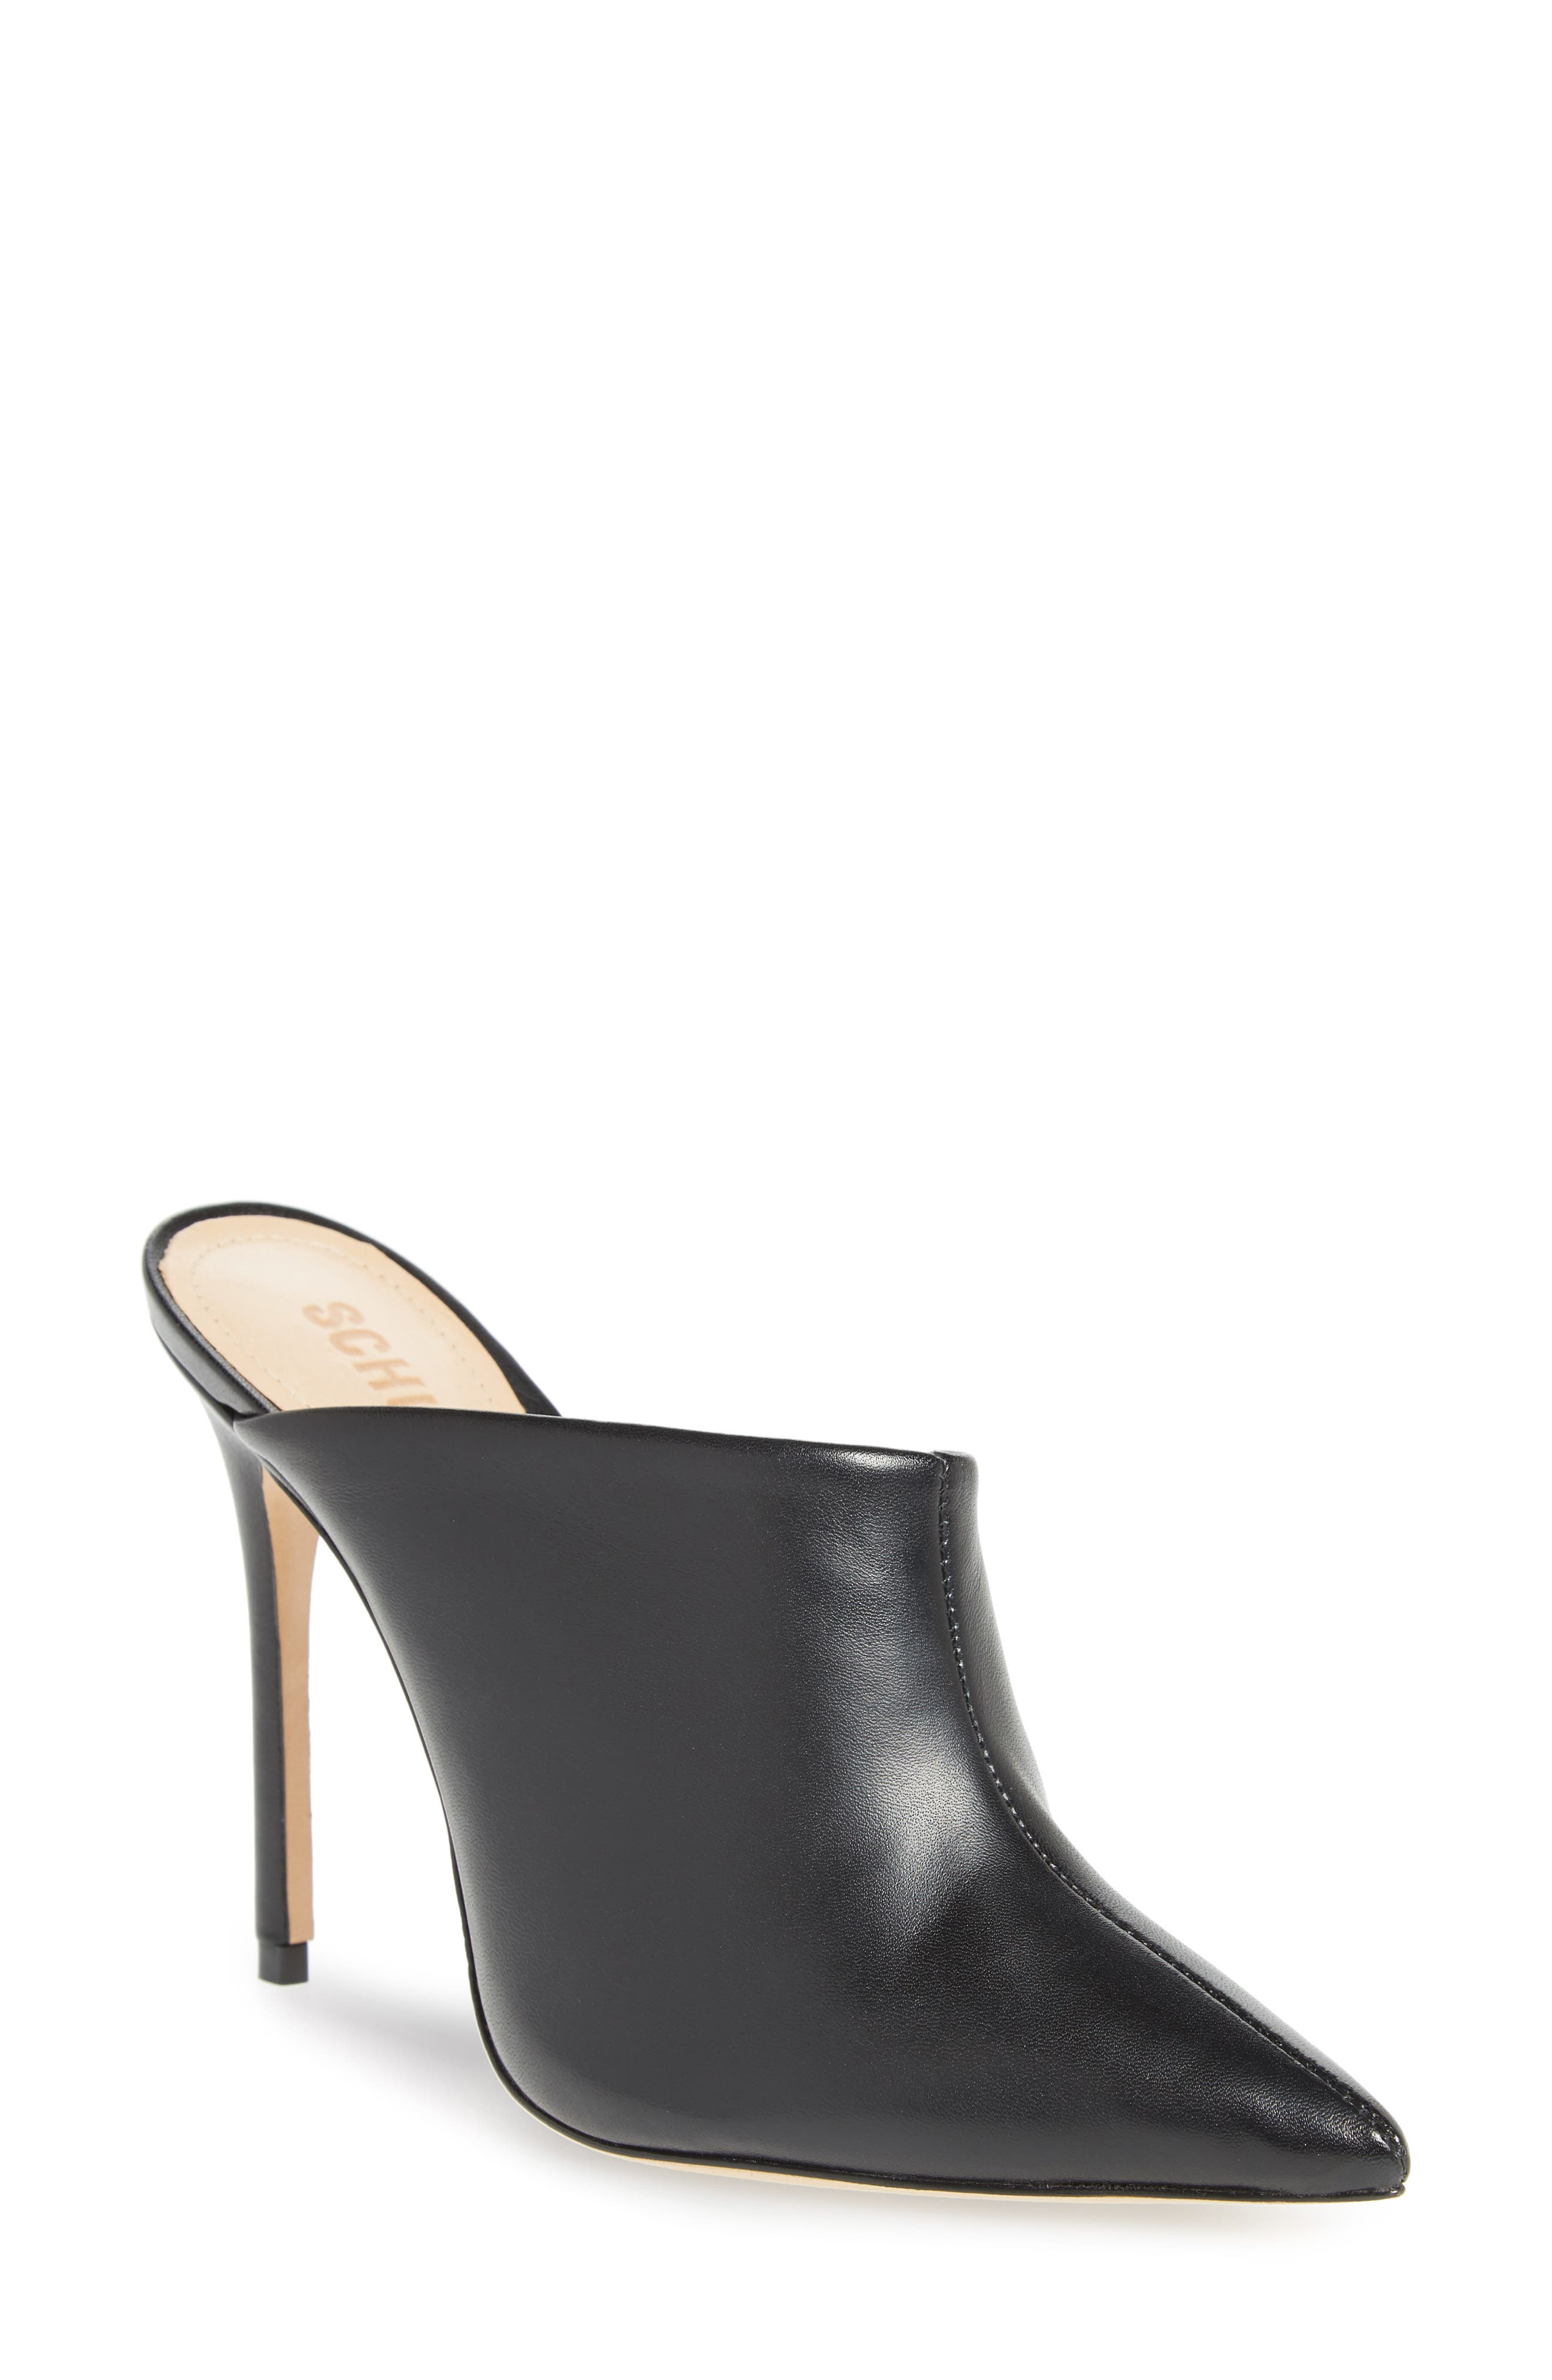 Quincy Stiletto Mule,                             Main thumbnail 1, color,                             BLACK